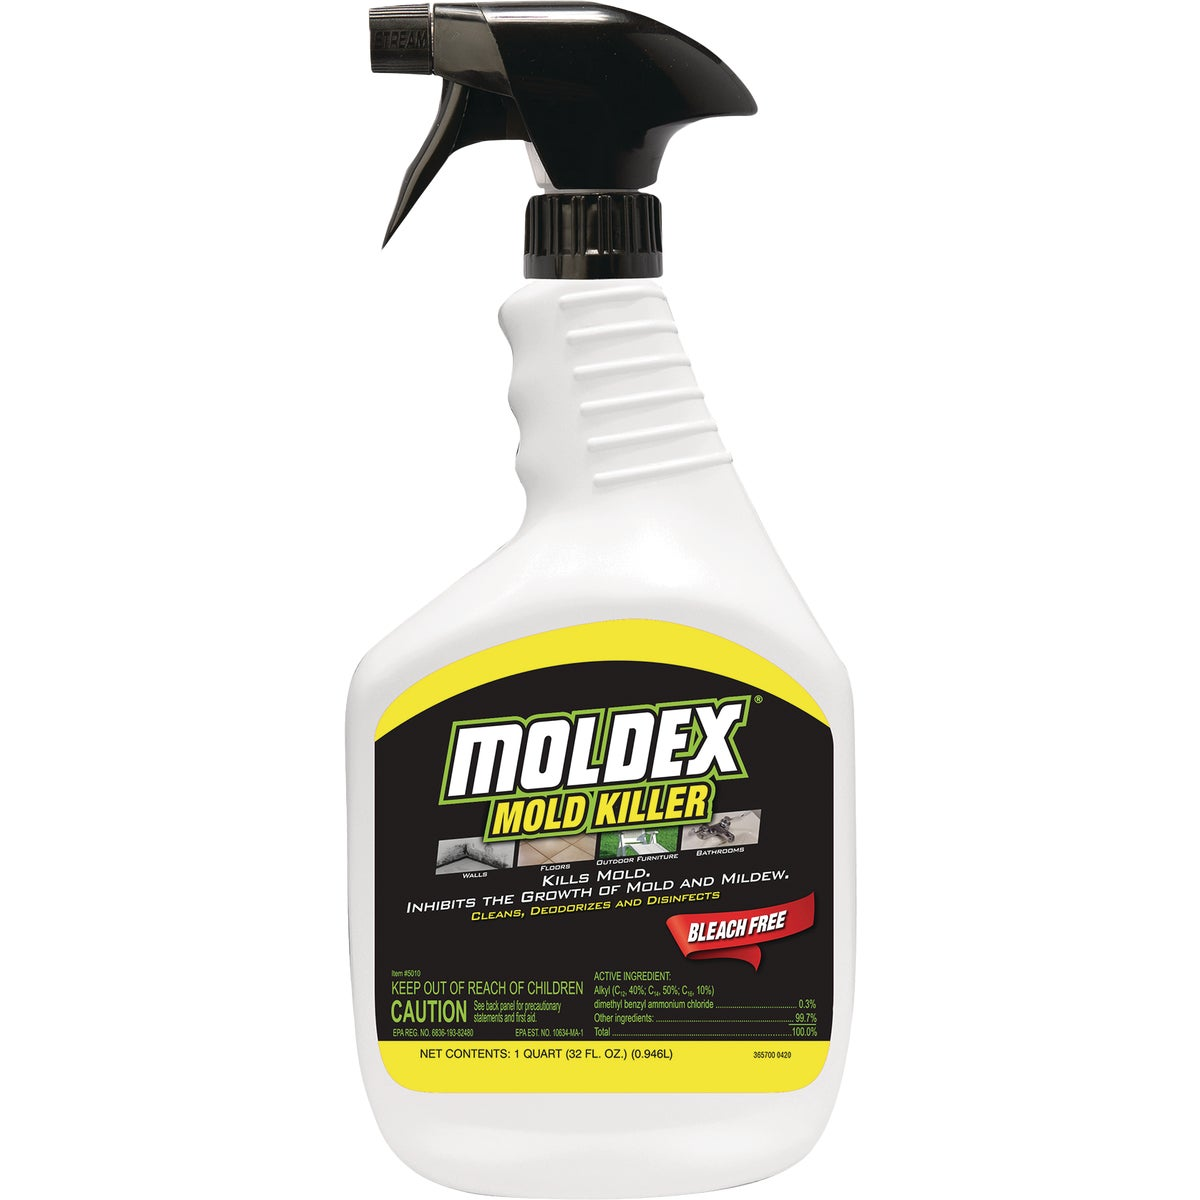 MOLDX SPRAY DISINFECTANT